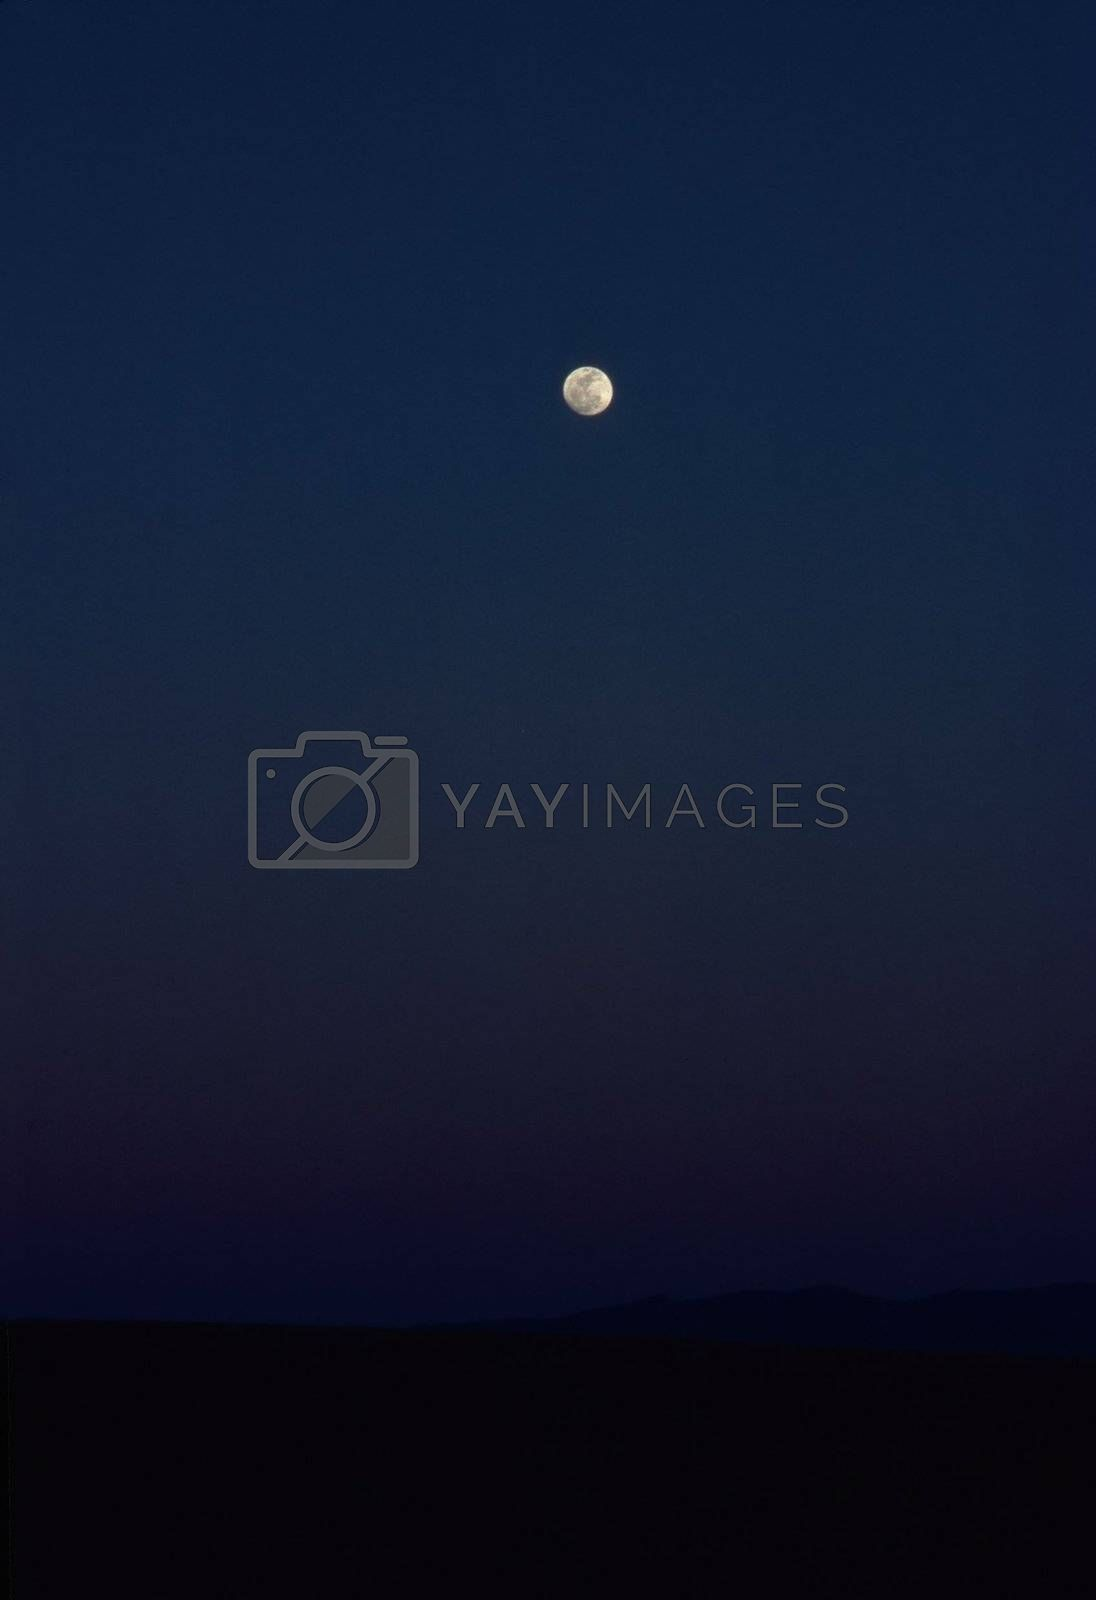 Royalty free image of Fullmoon by jol66